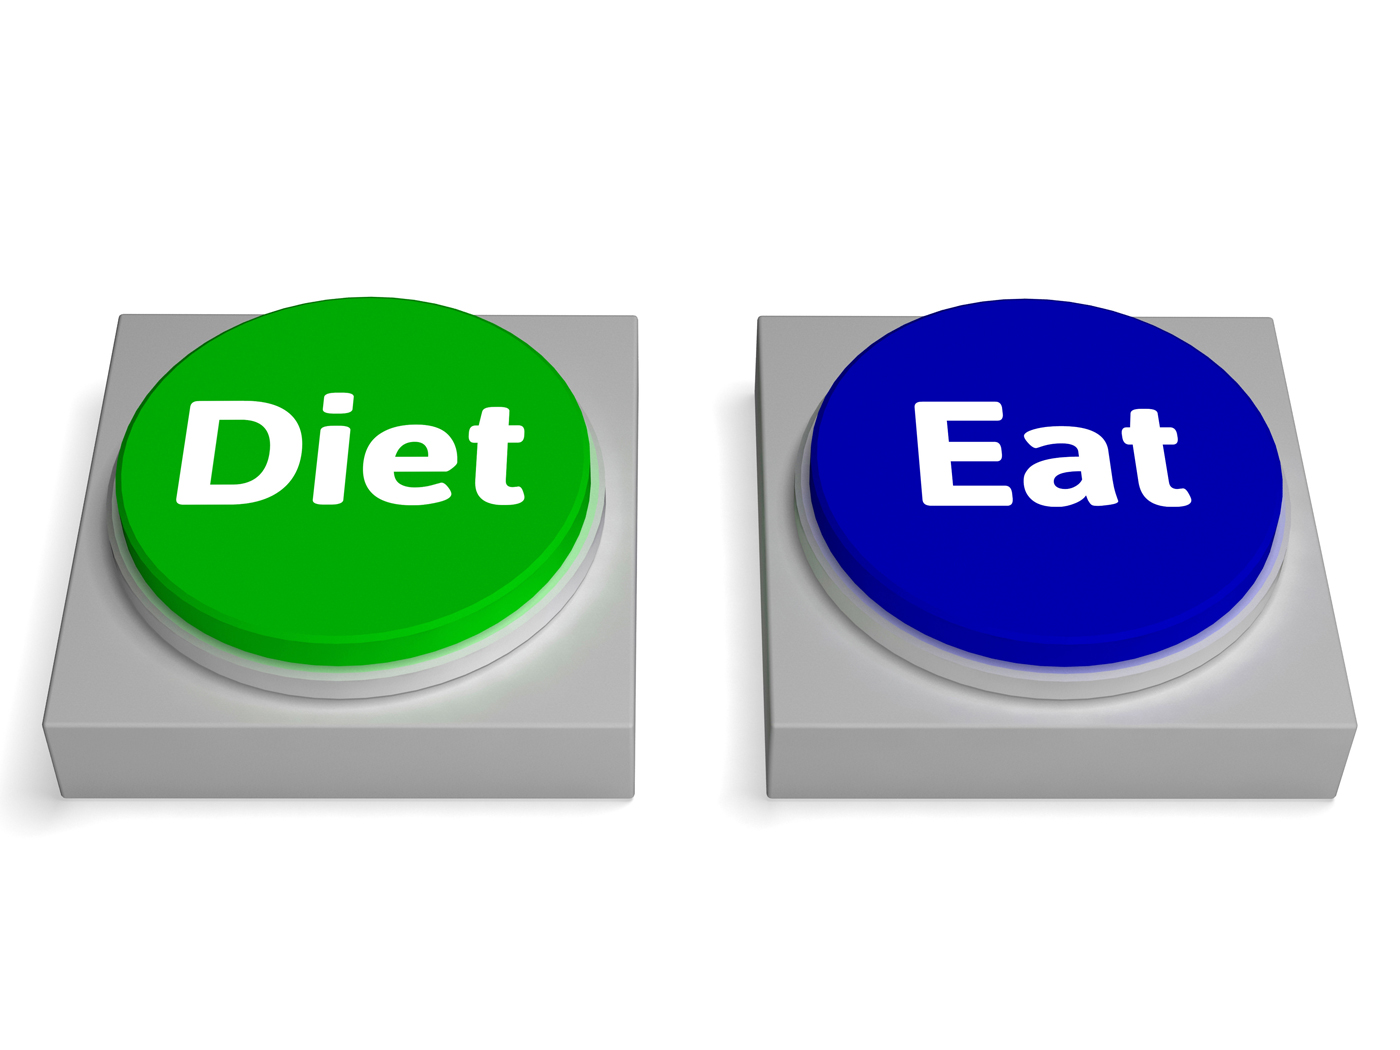 diet or eat buttons